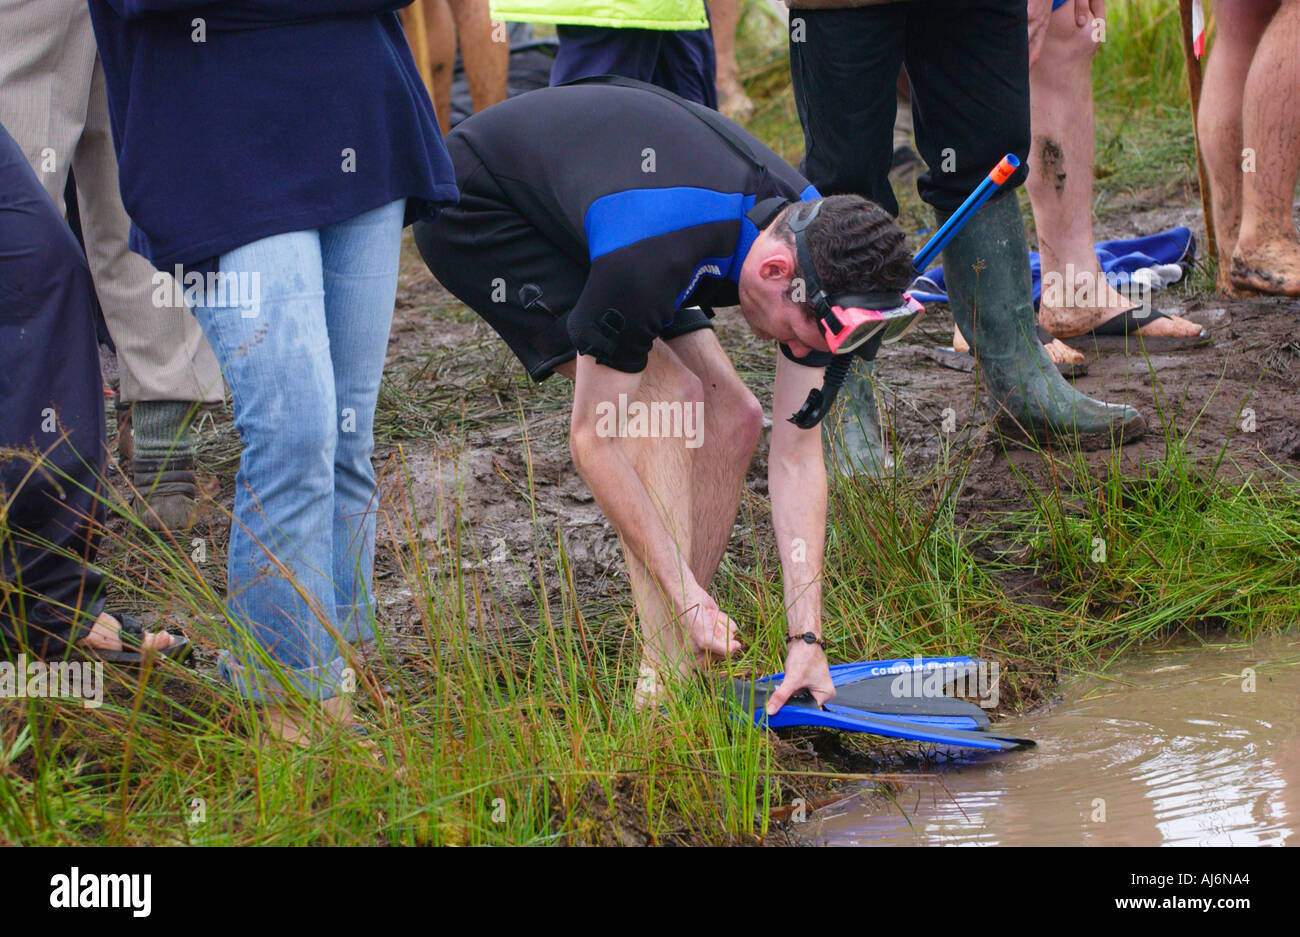 Competitor ready to take the plunge in the World Bog Snorkelling Championships at Llanwrtyd Wells Powys Mid Wales UK - Stock Image